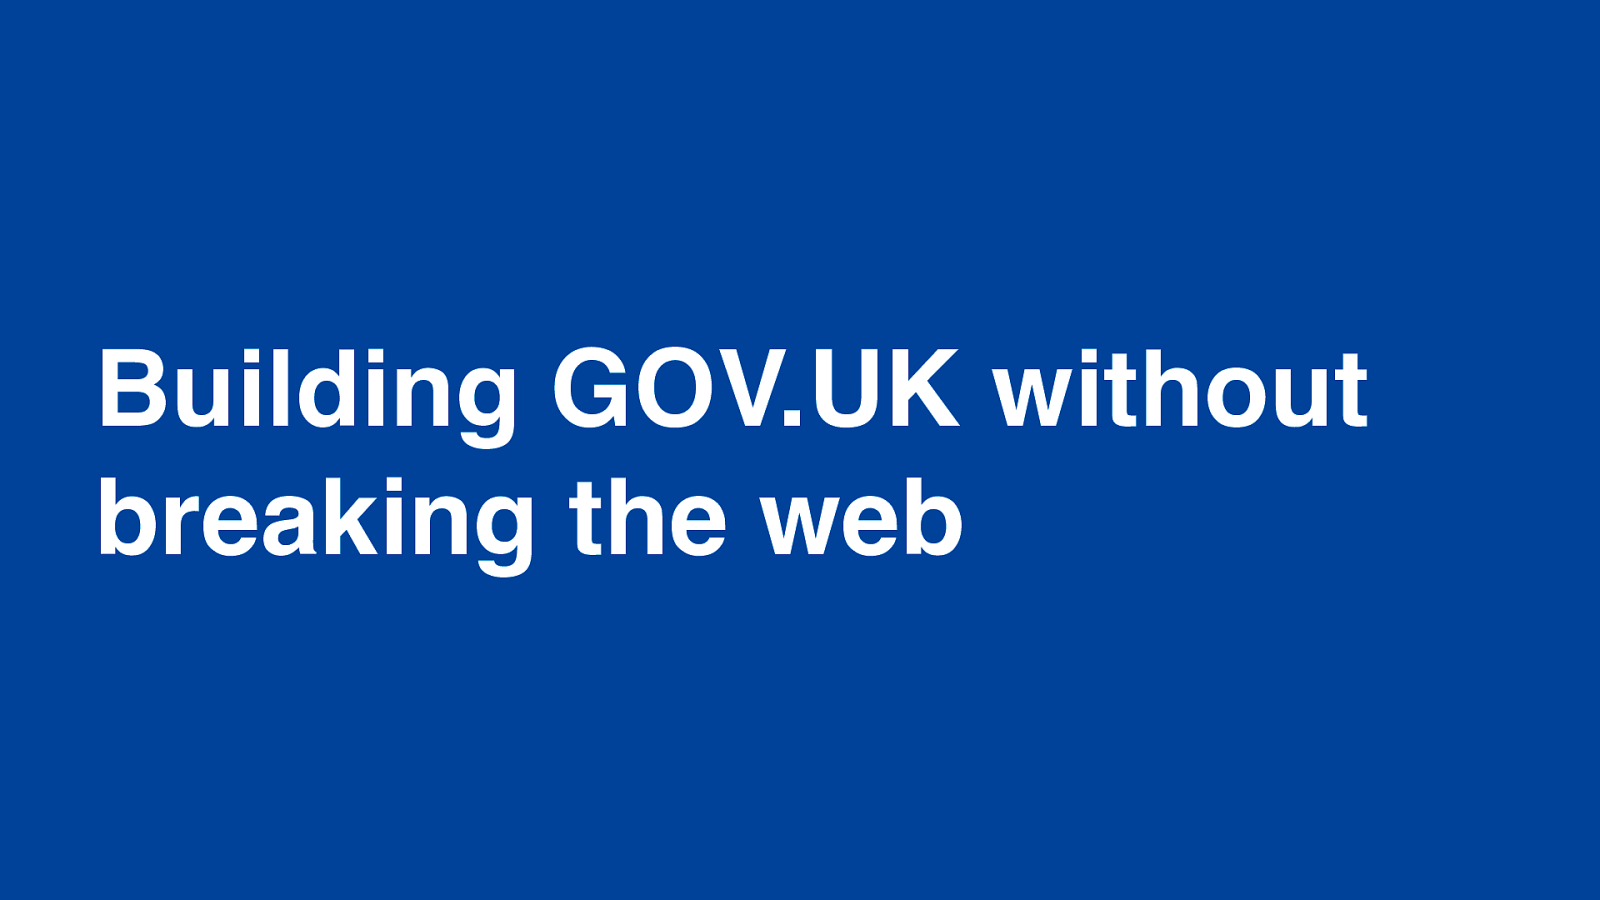 Building GOV.UK without breaking the web